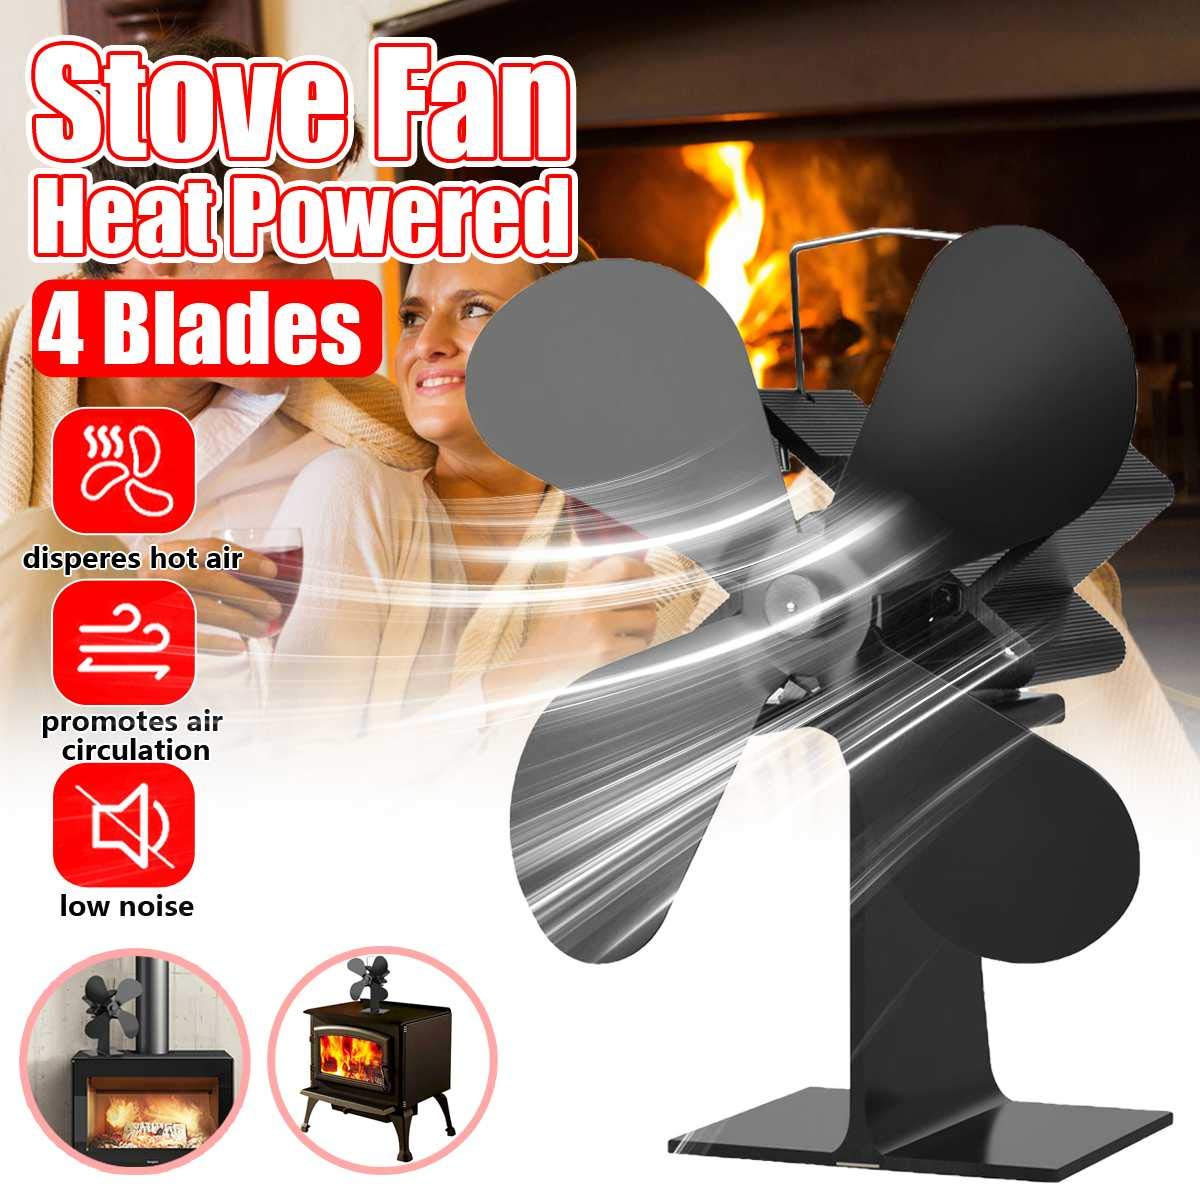 Best Design 4 Blades Heat Powered Stove Fan Log Wood Burner Quiet Black Home, Home Power Stove - Wood Stove Fan, Woodburning Stove Fan, Heat Powered Stove Top Fan, Log Burner Stove, Heat Powered Fans by NUMBER NICE Dream